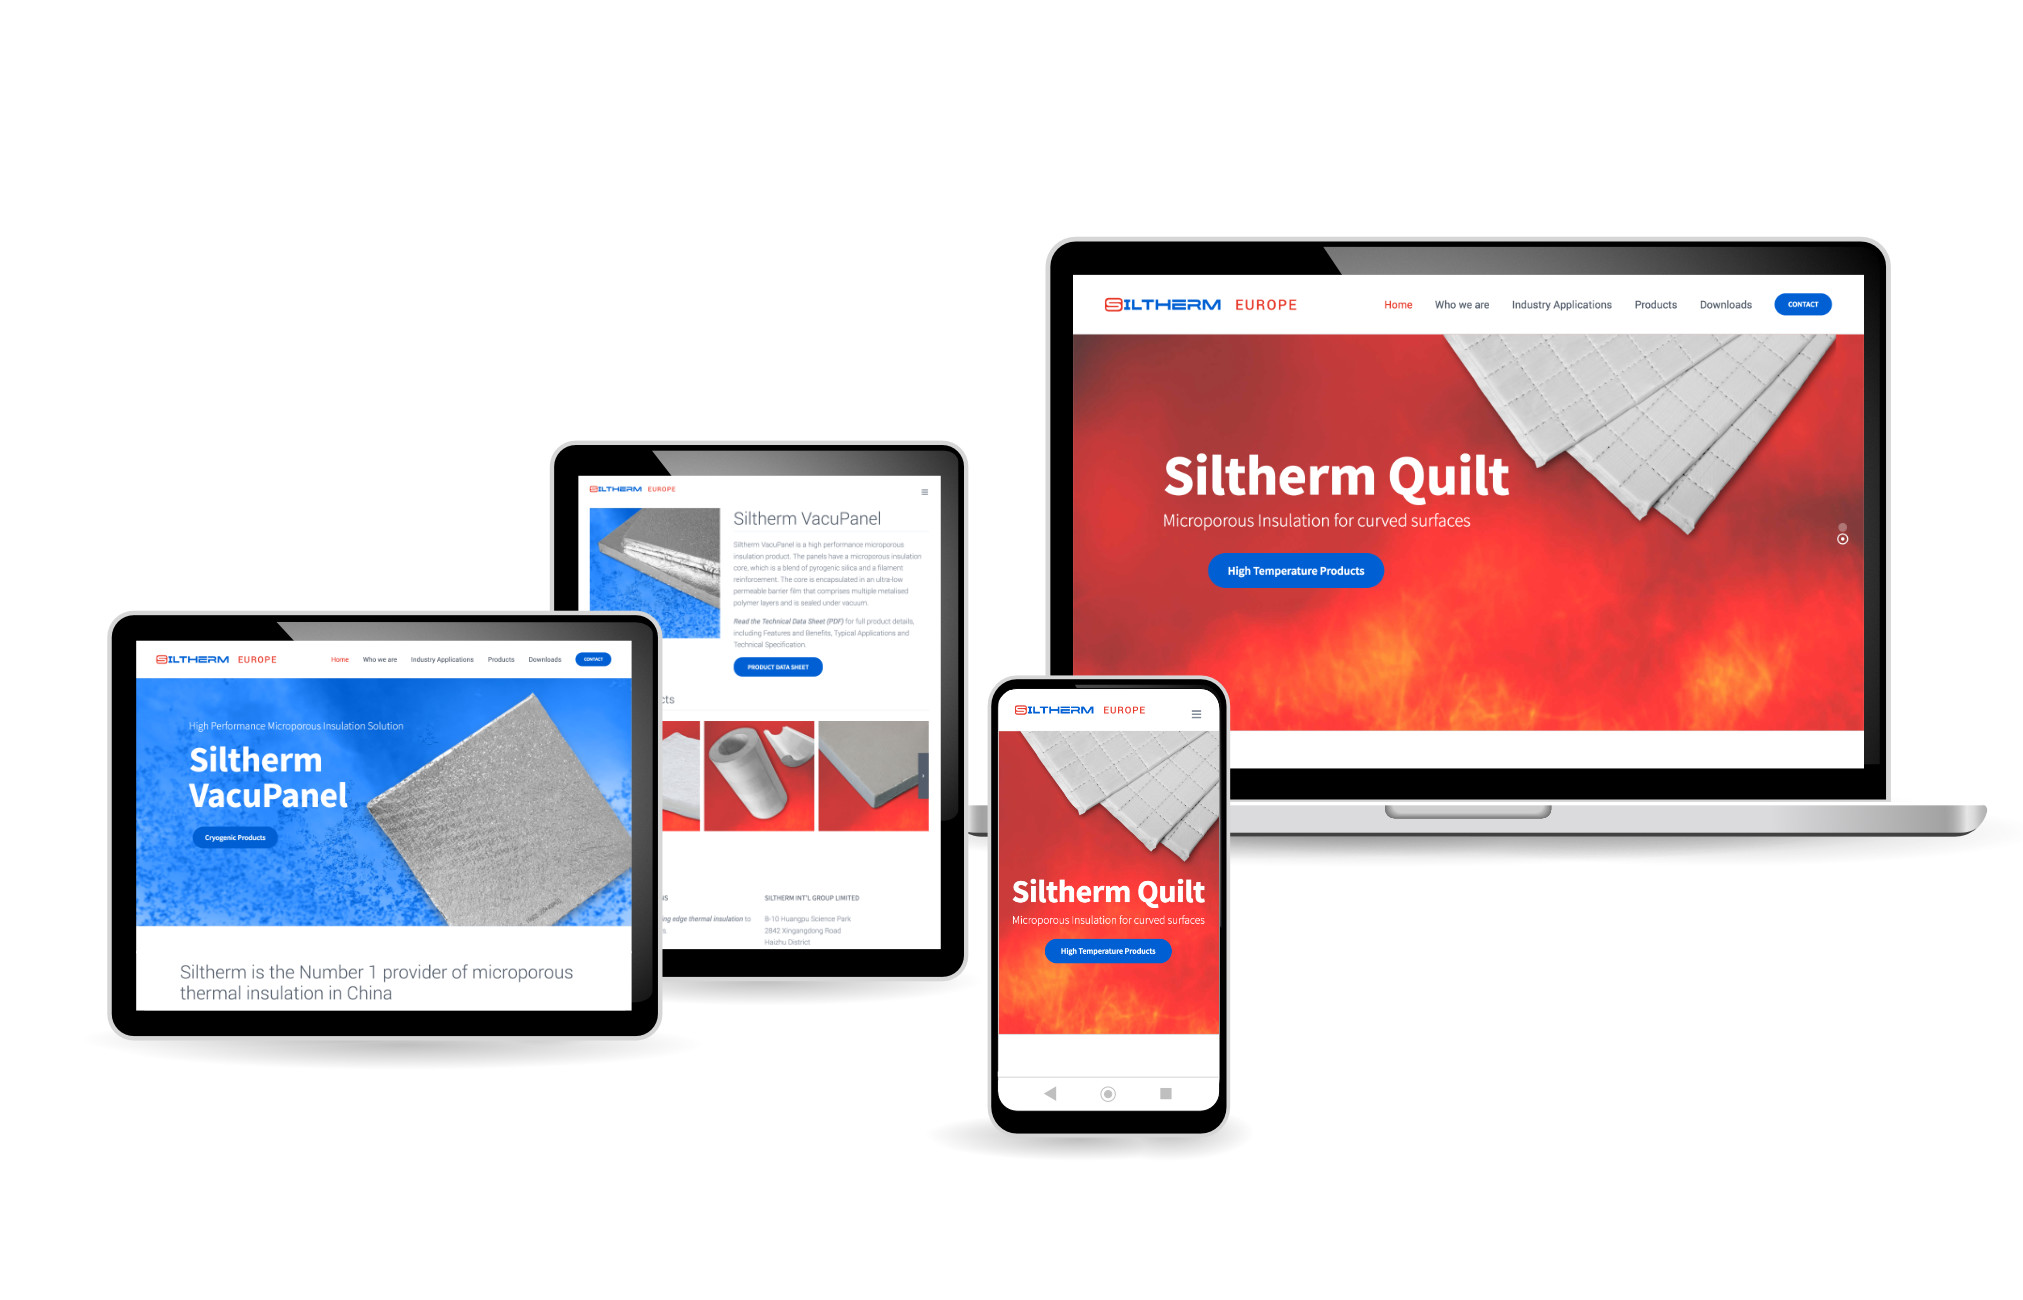 Siltherm Europe, Microporous Insulation Products, web design by Orangebox Digital, rebrand with new Logo, April 2020